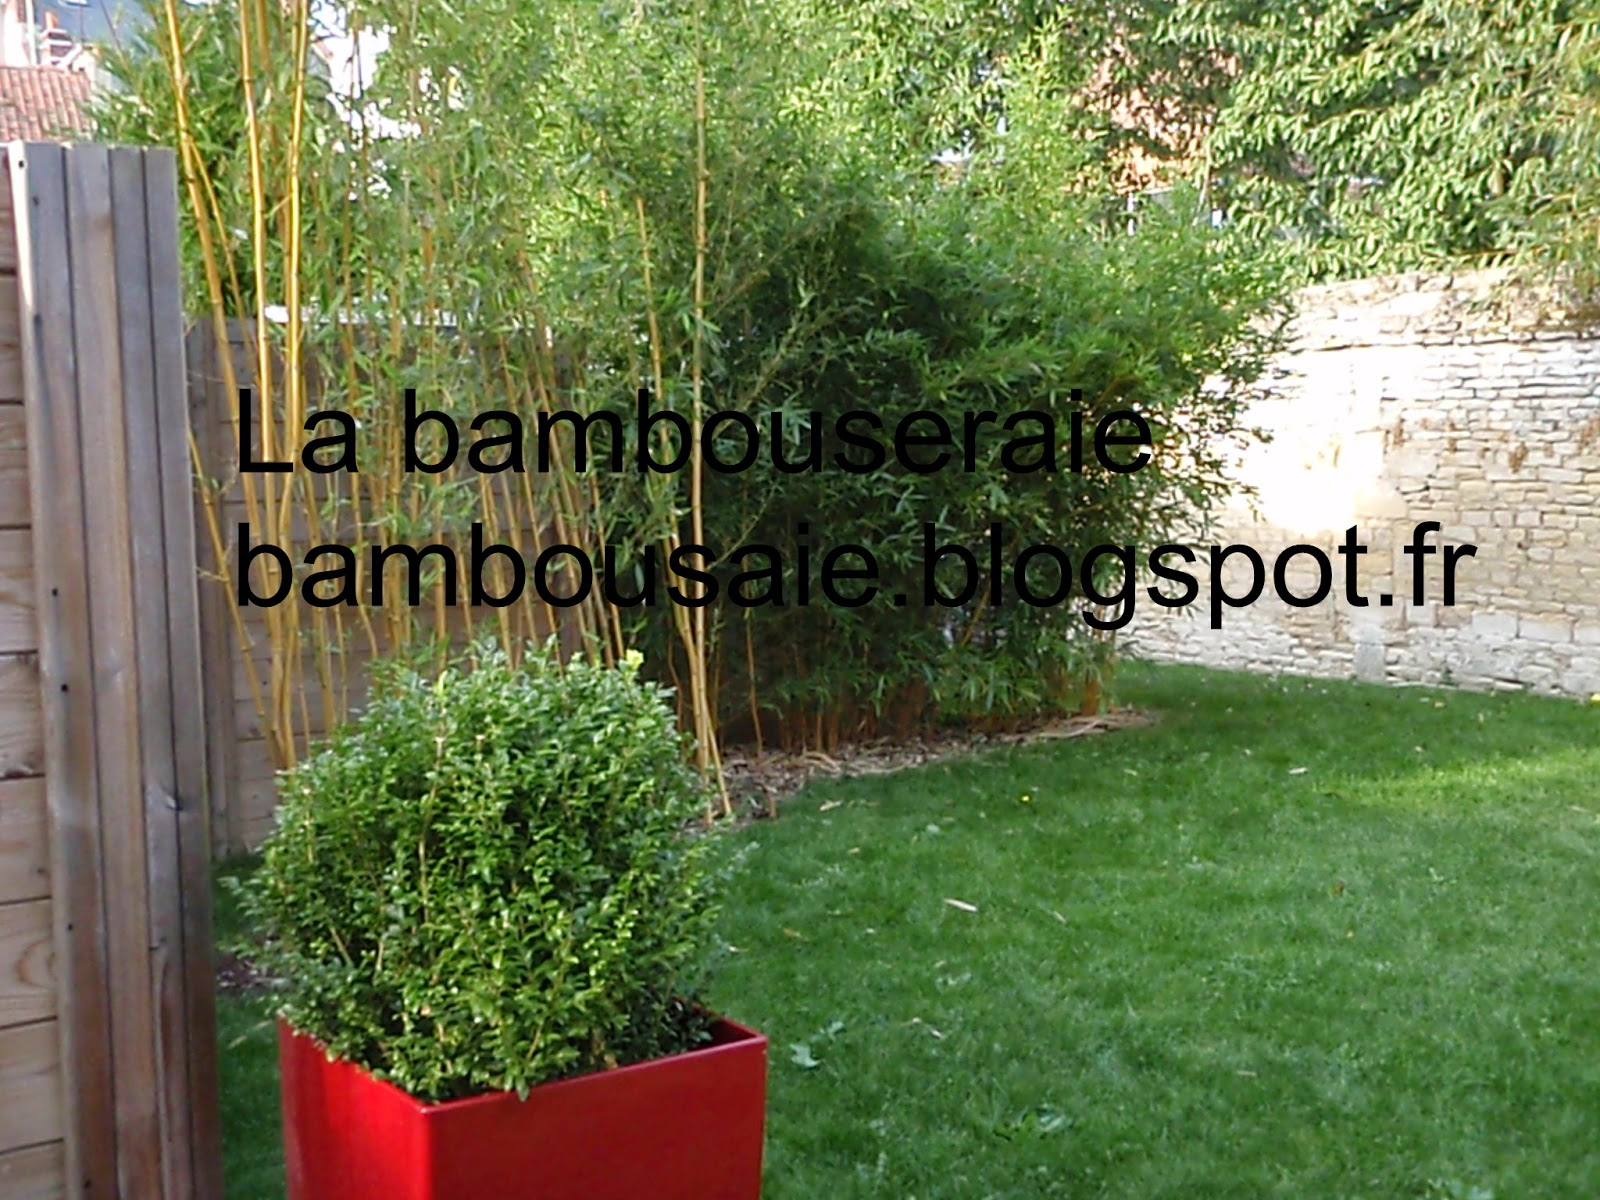 La bambouseraie bambou illustration et photo for Bambou haie de jardin